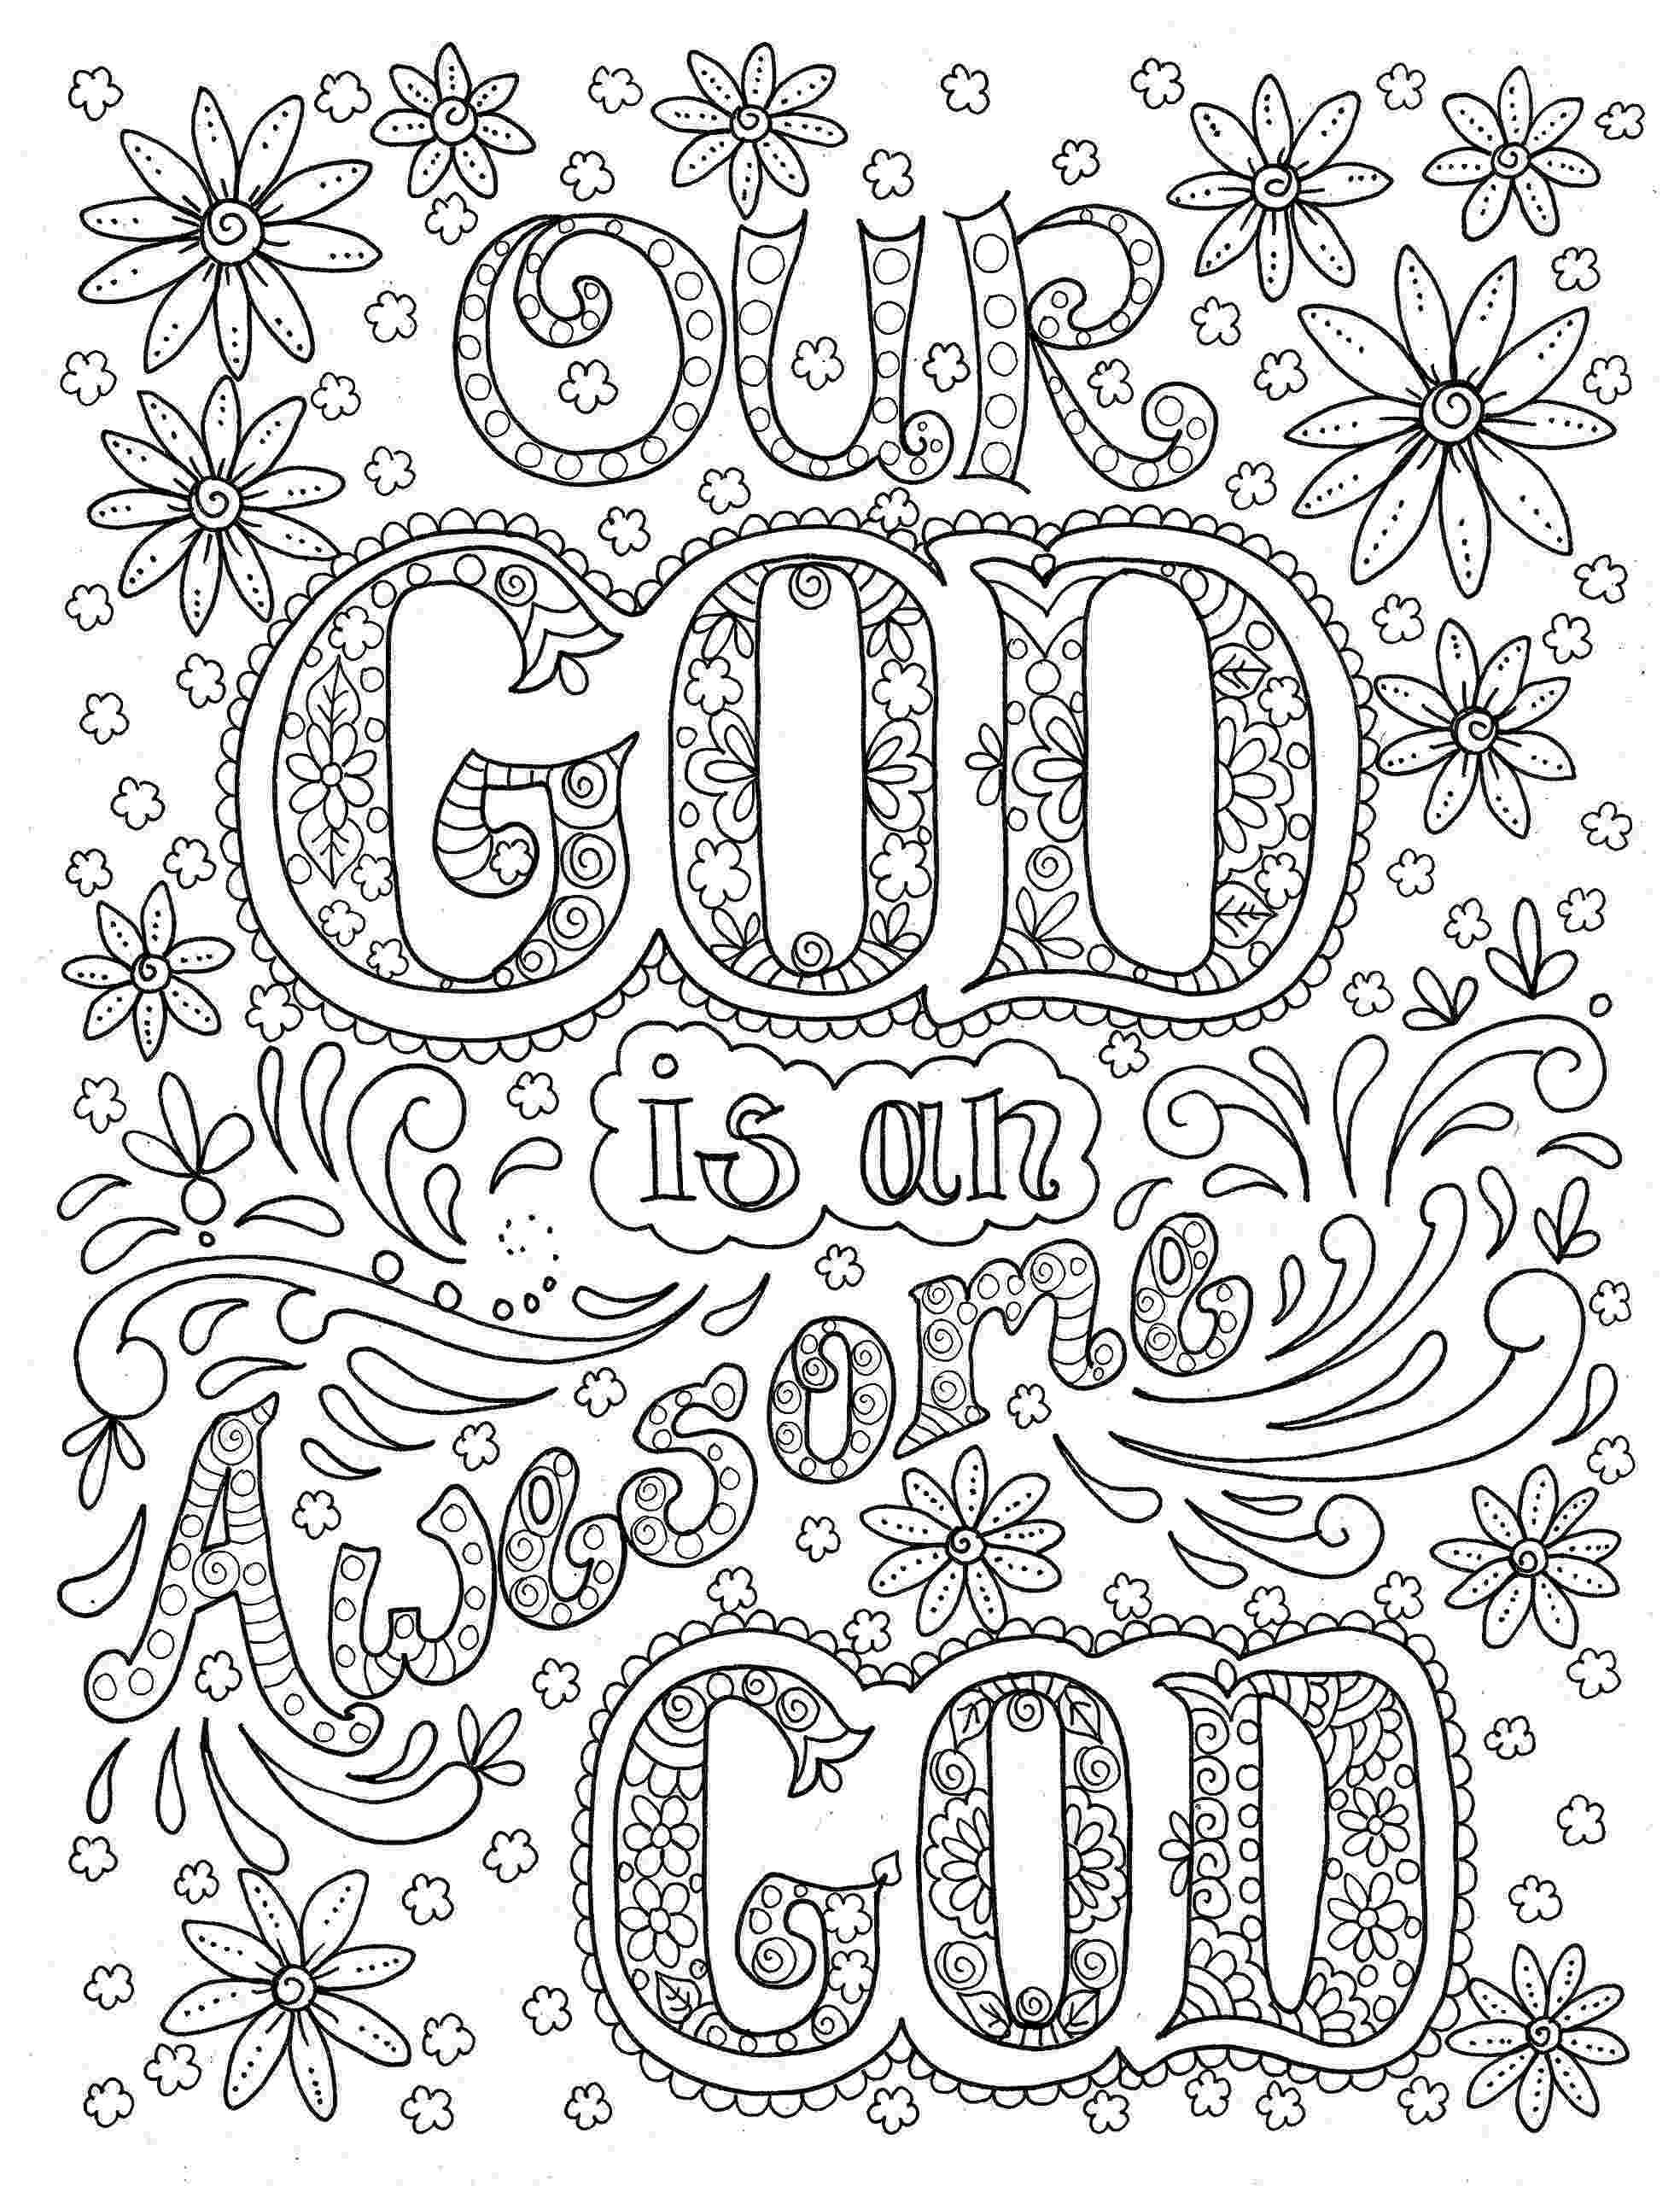 free bible coloring pages pin on christian coloring pages nt bible coloring pages free